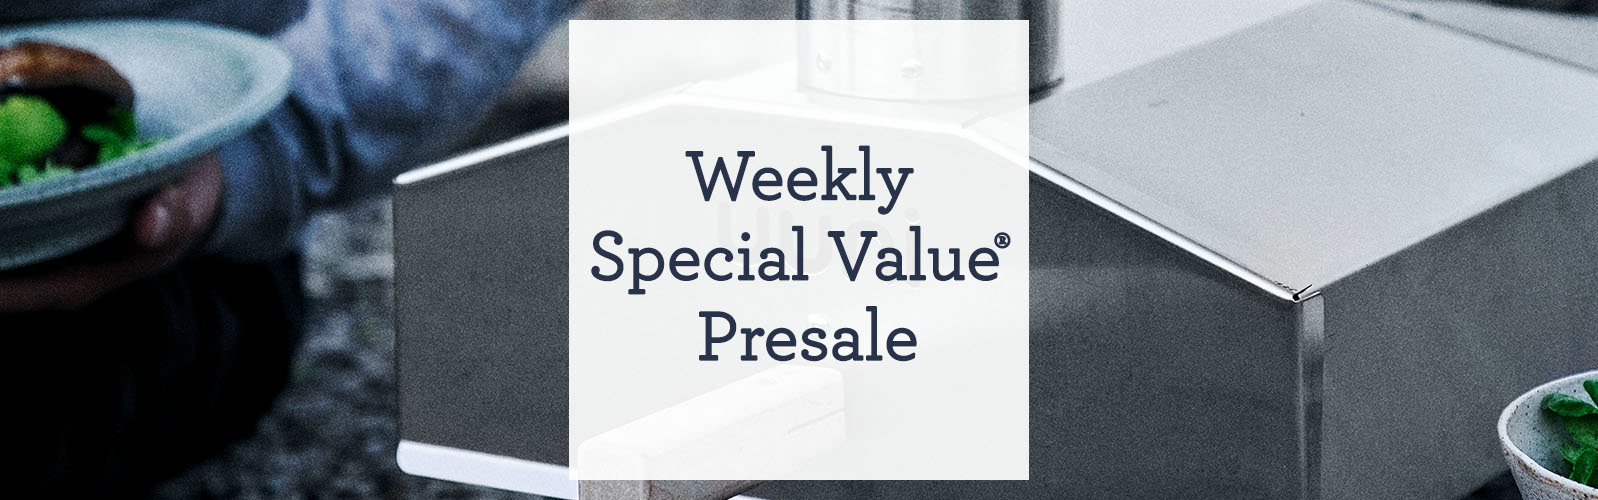 Weekly Special Value® Presale